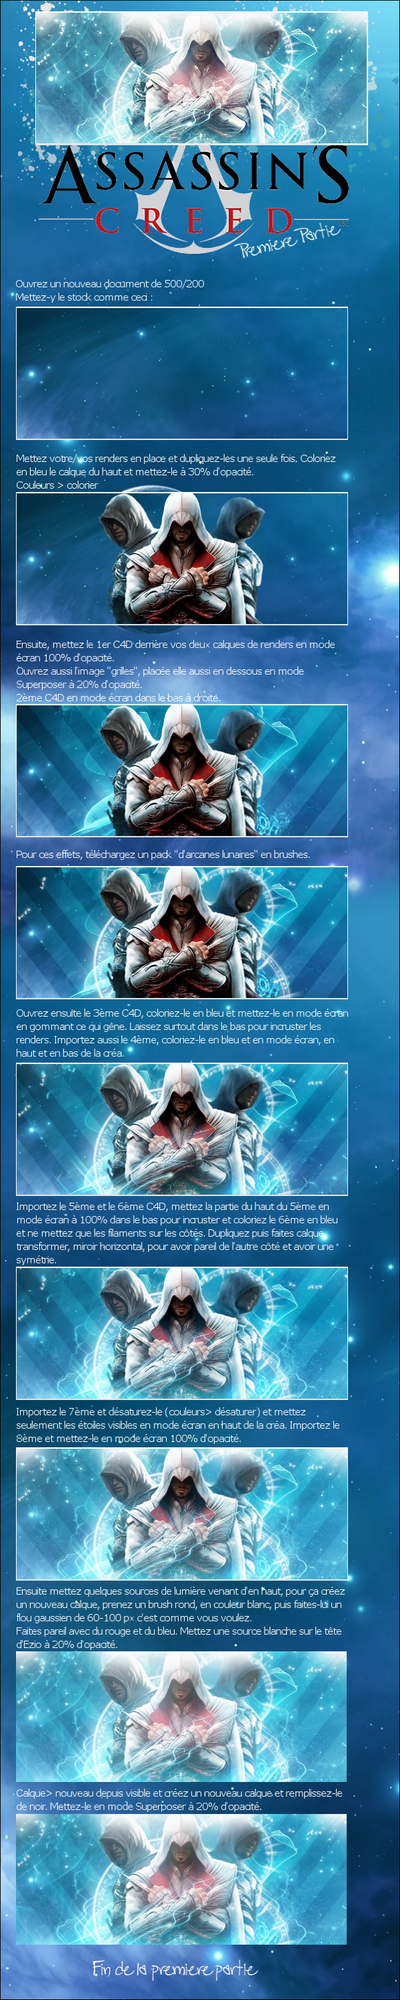 Tuto Assassin's Creed FR pt 1 by Graphfun